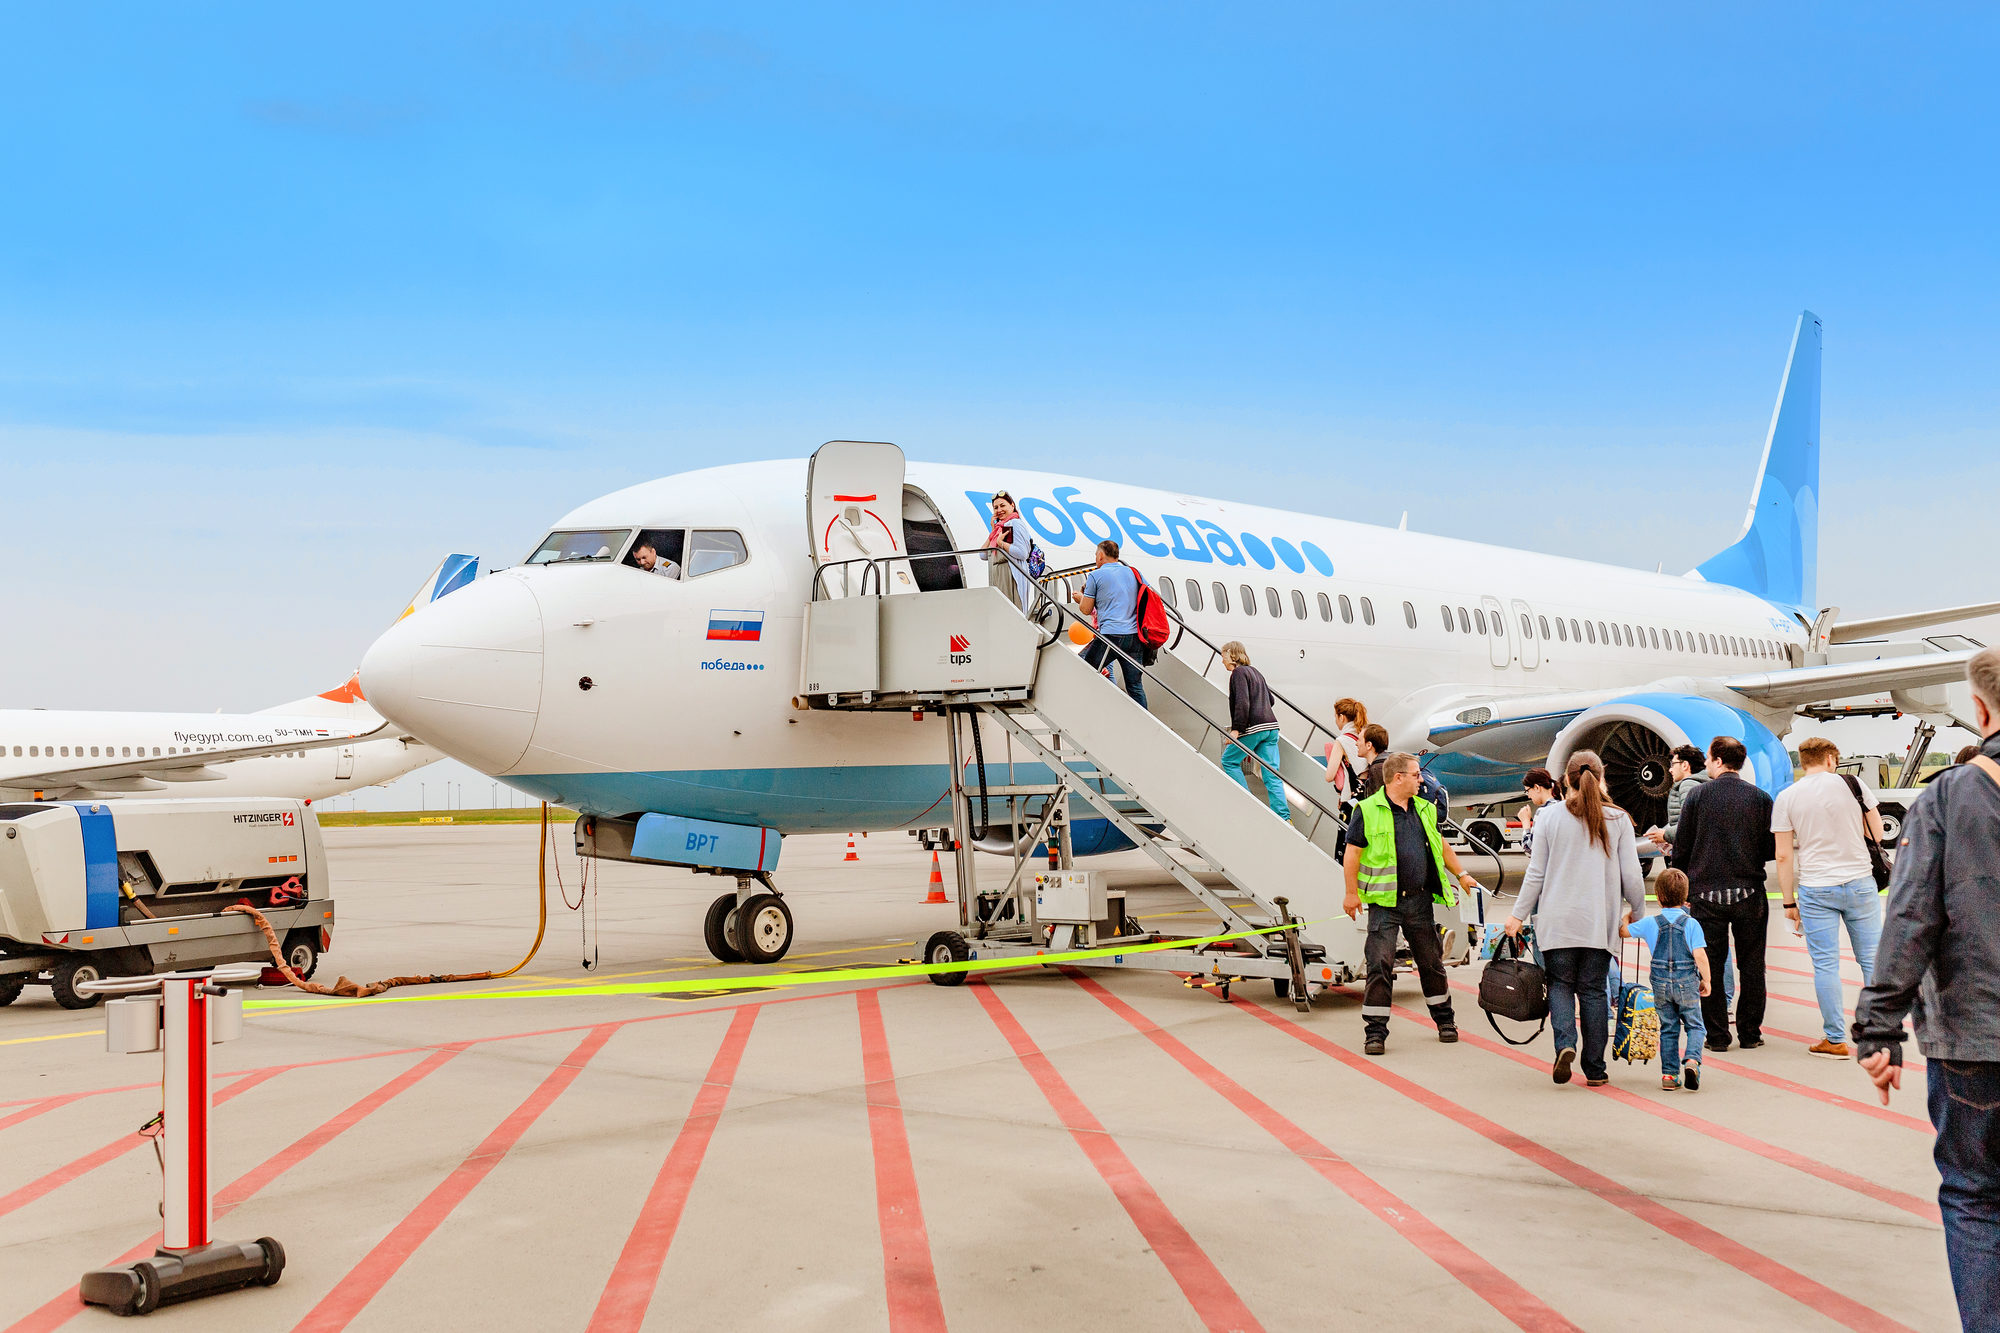 halle-airport-germany-may-23-2018-boarding-on-pobeda-airlines-russian-lowcost-jet-airplane-in-airport